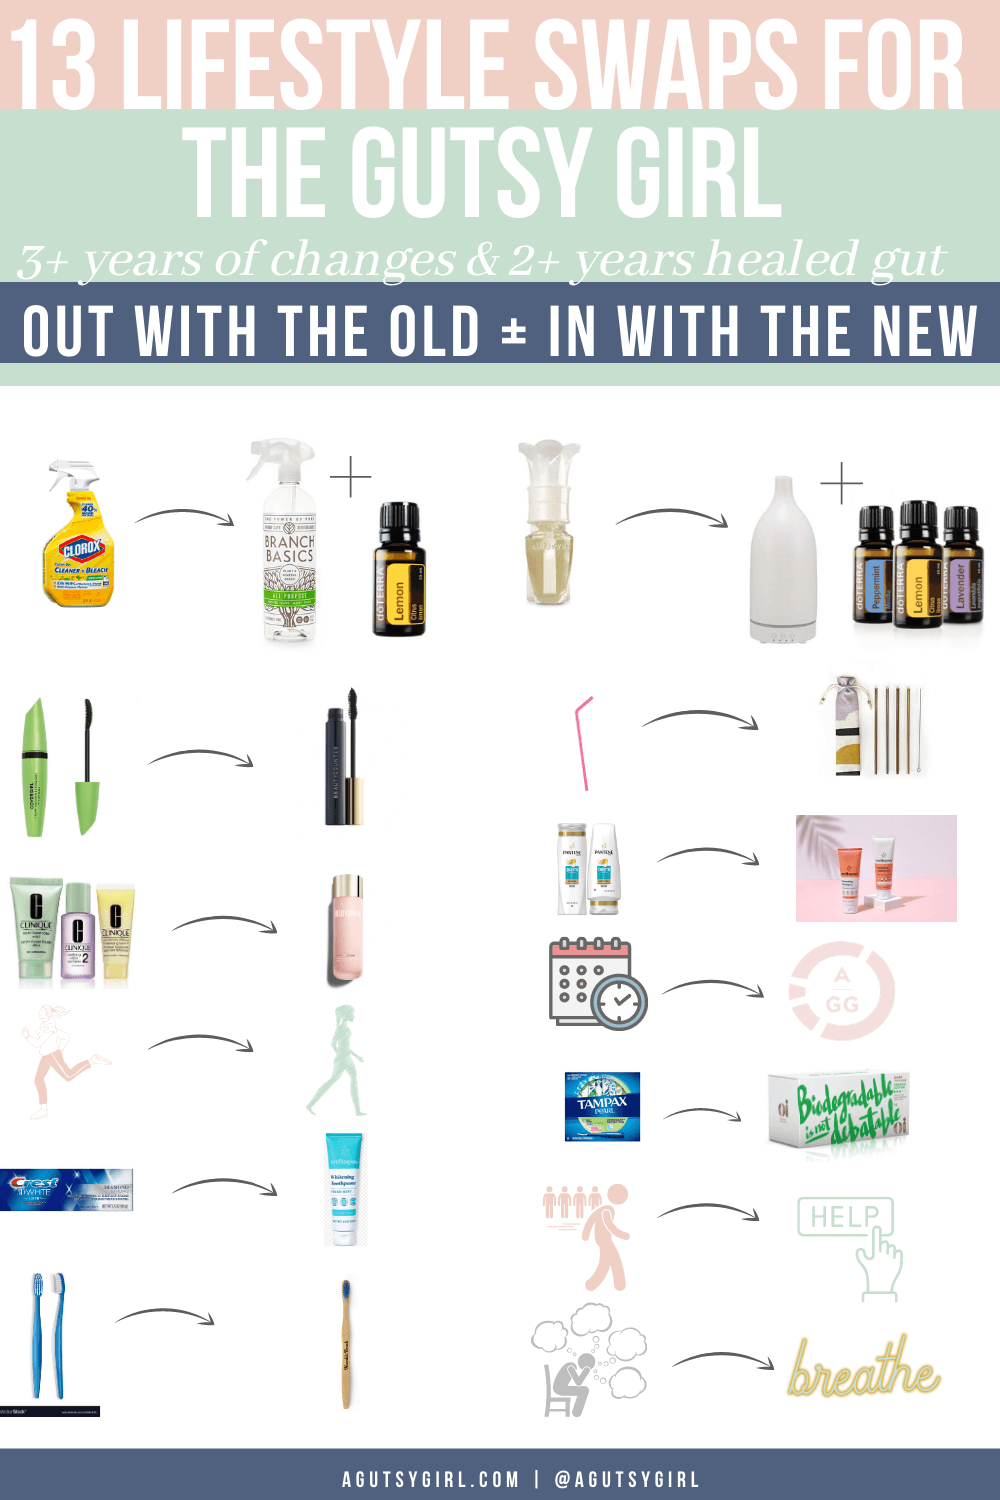 13 Lifestyle Swaps for the Gutsy Girl agutsygirl.com #guthealth #nontoxic #skincare #healthyswaps